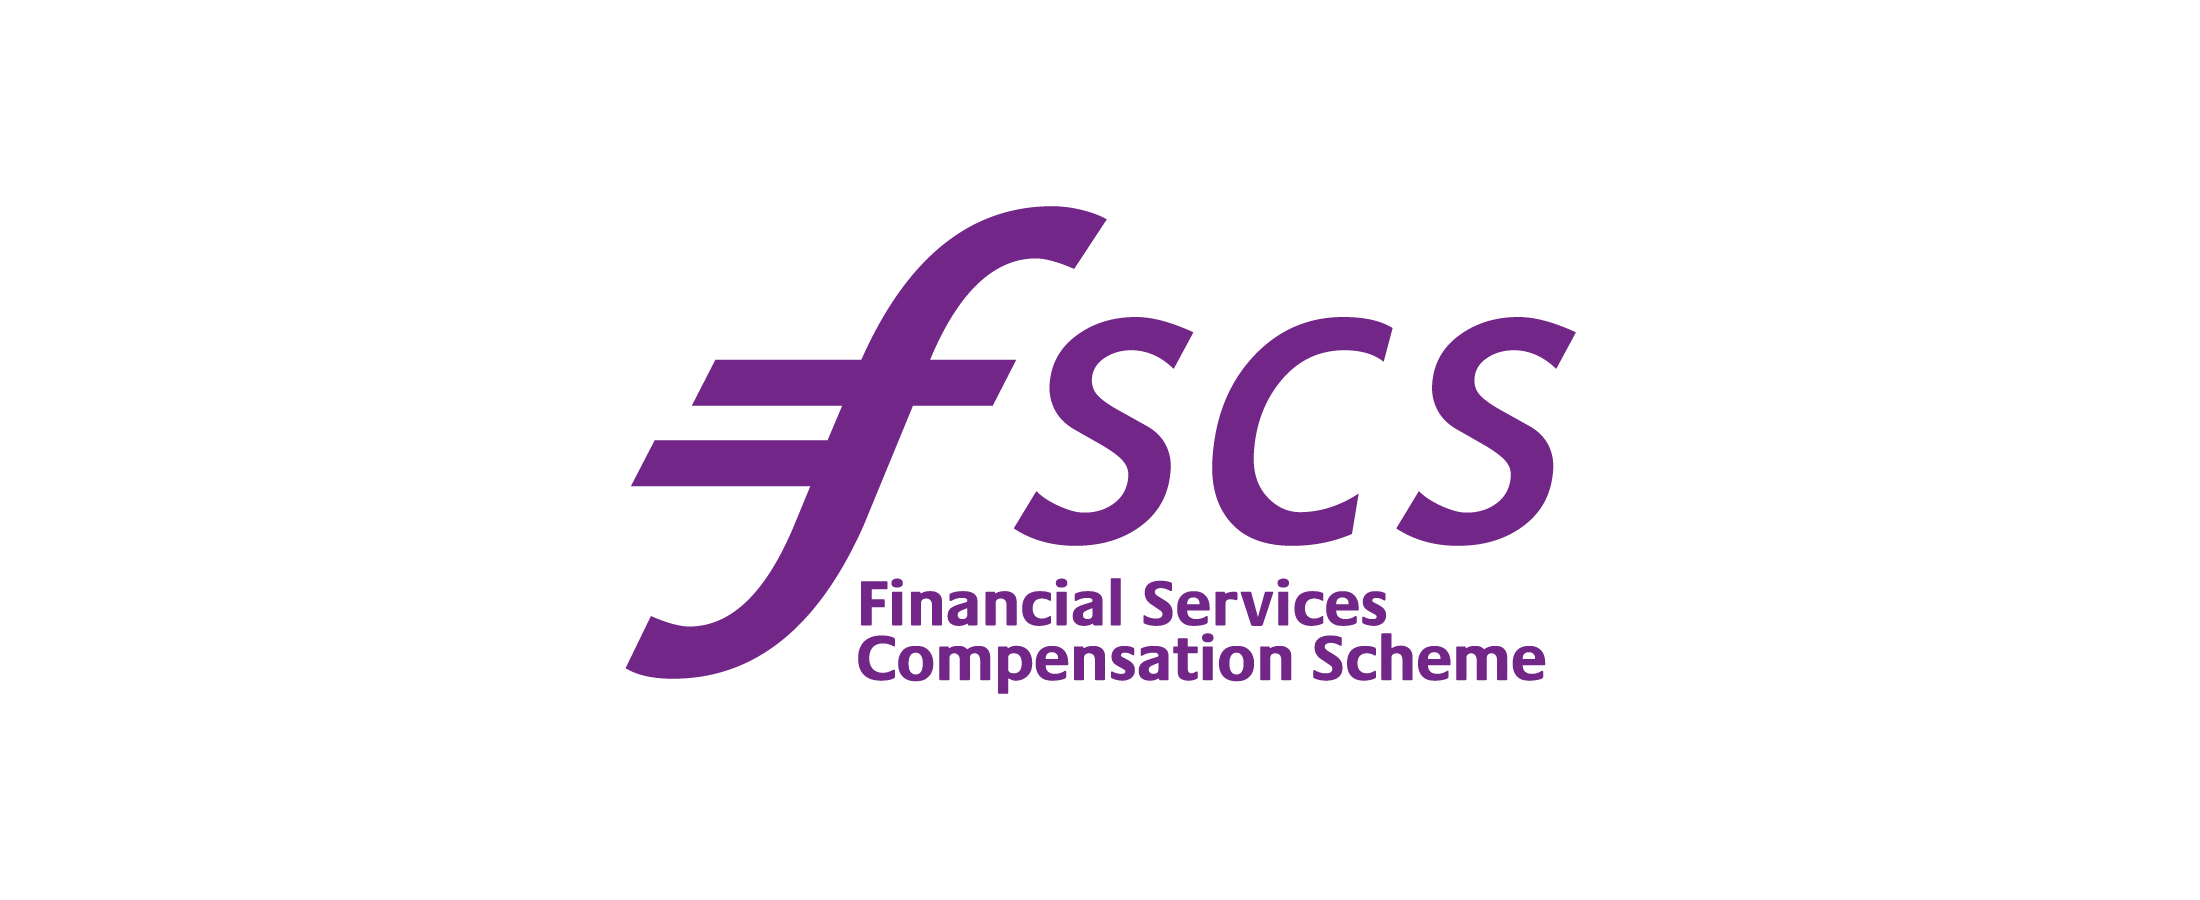 "Protected and insured - Our customers are protected by the Financial Services Compensation Scheme (""FSCS"") to a limit of £50,000. We encourage readers to visit the FSCS website to learn more."